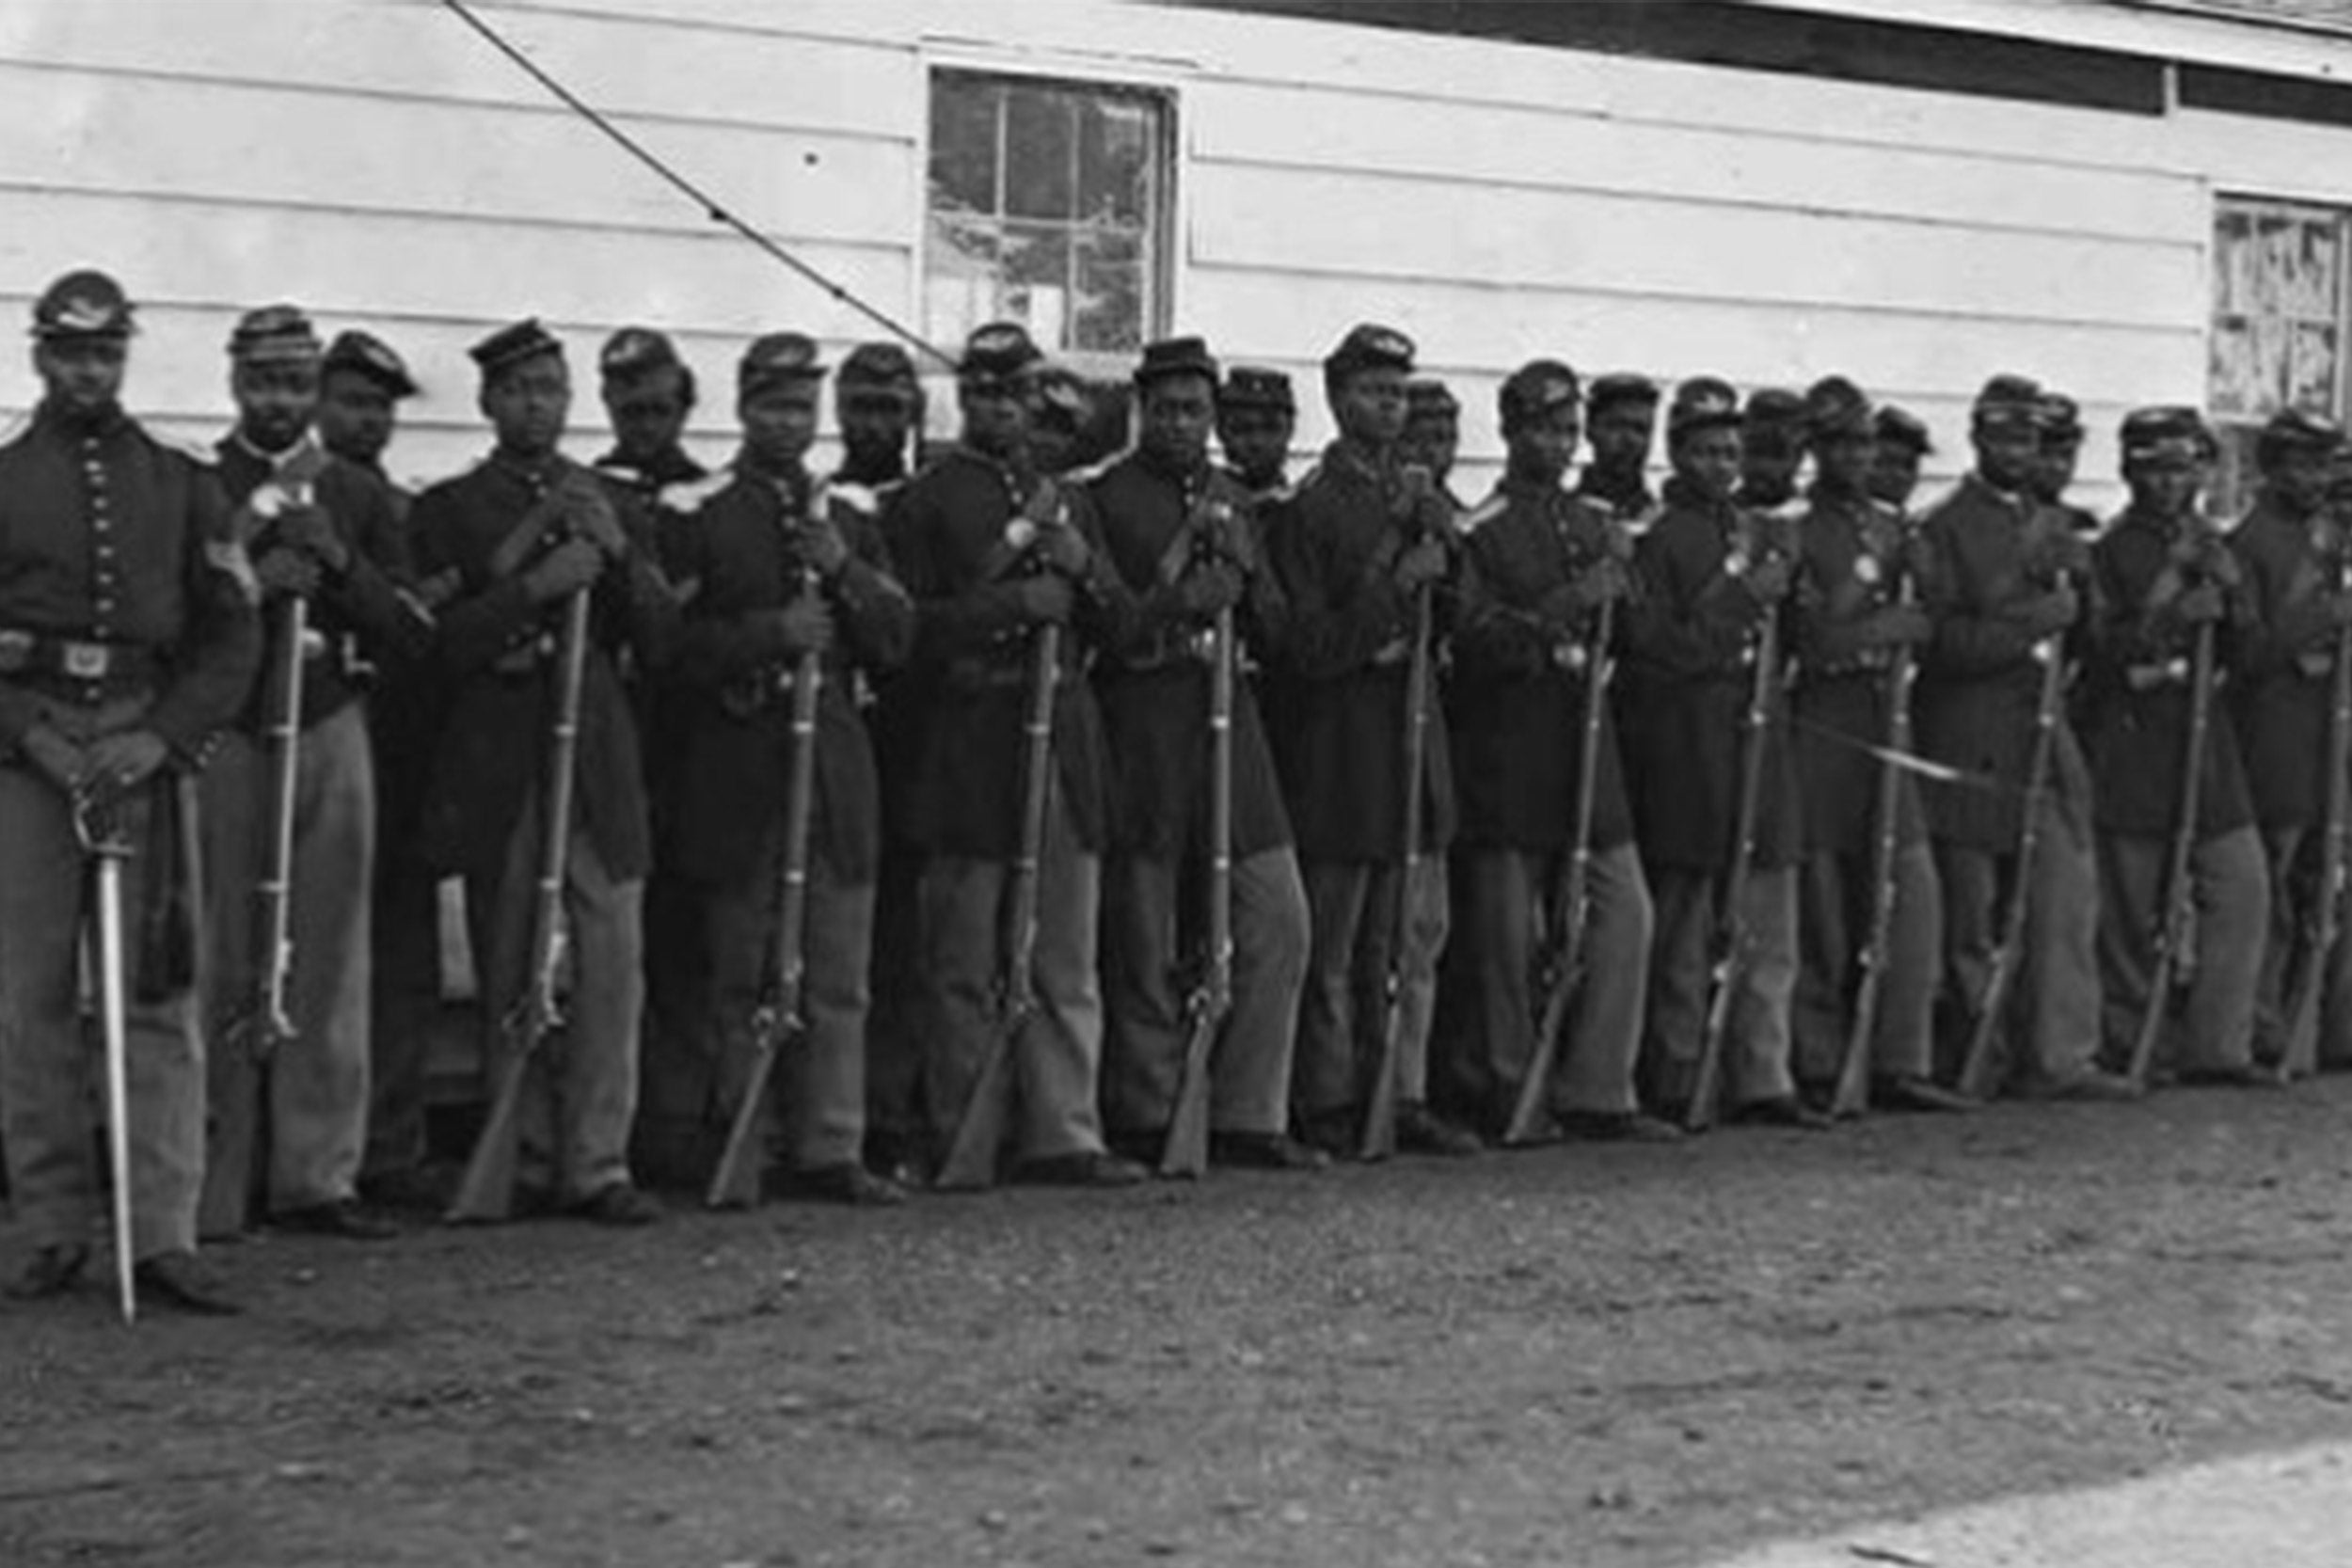 Black soldiers from the Civil War.